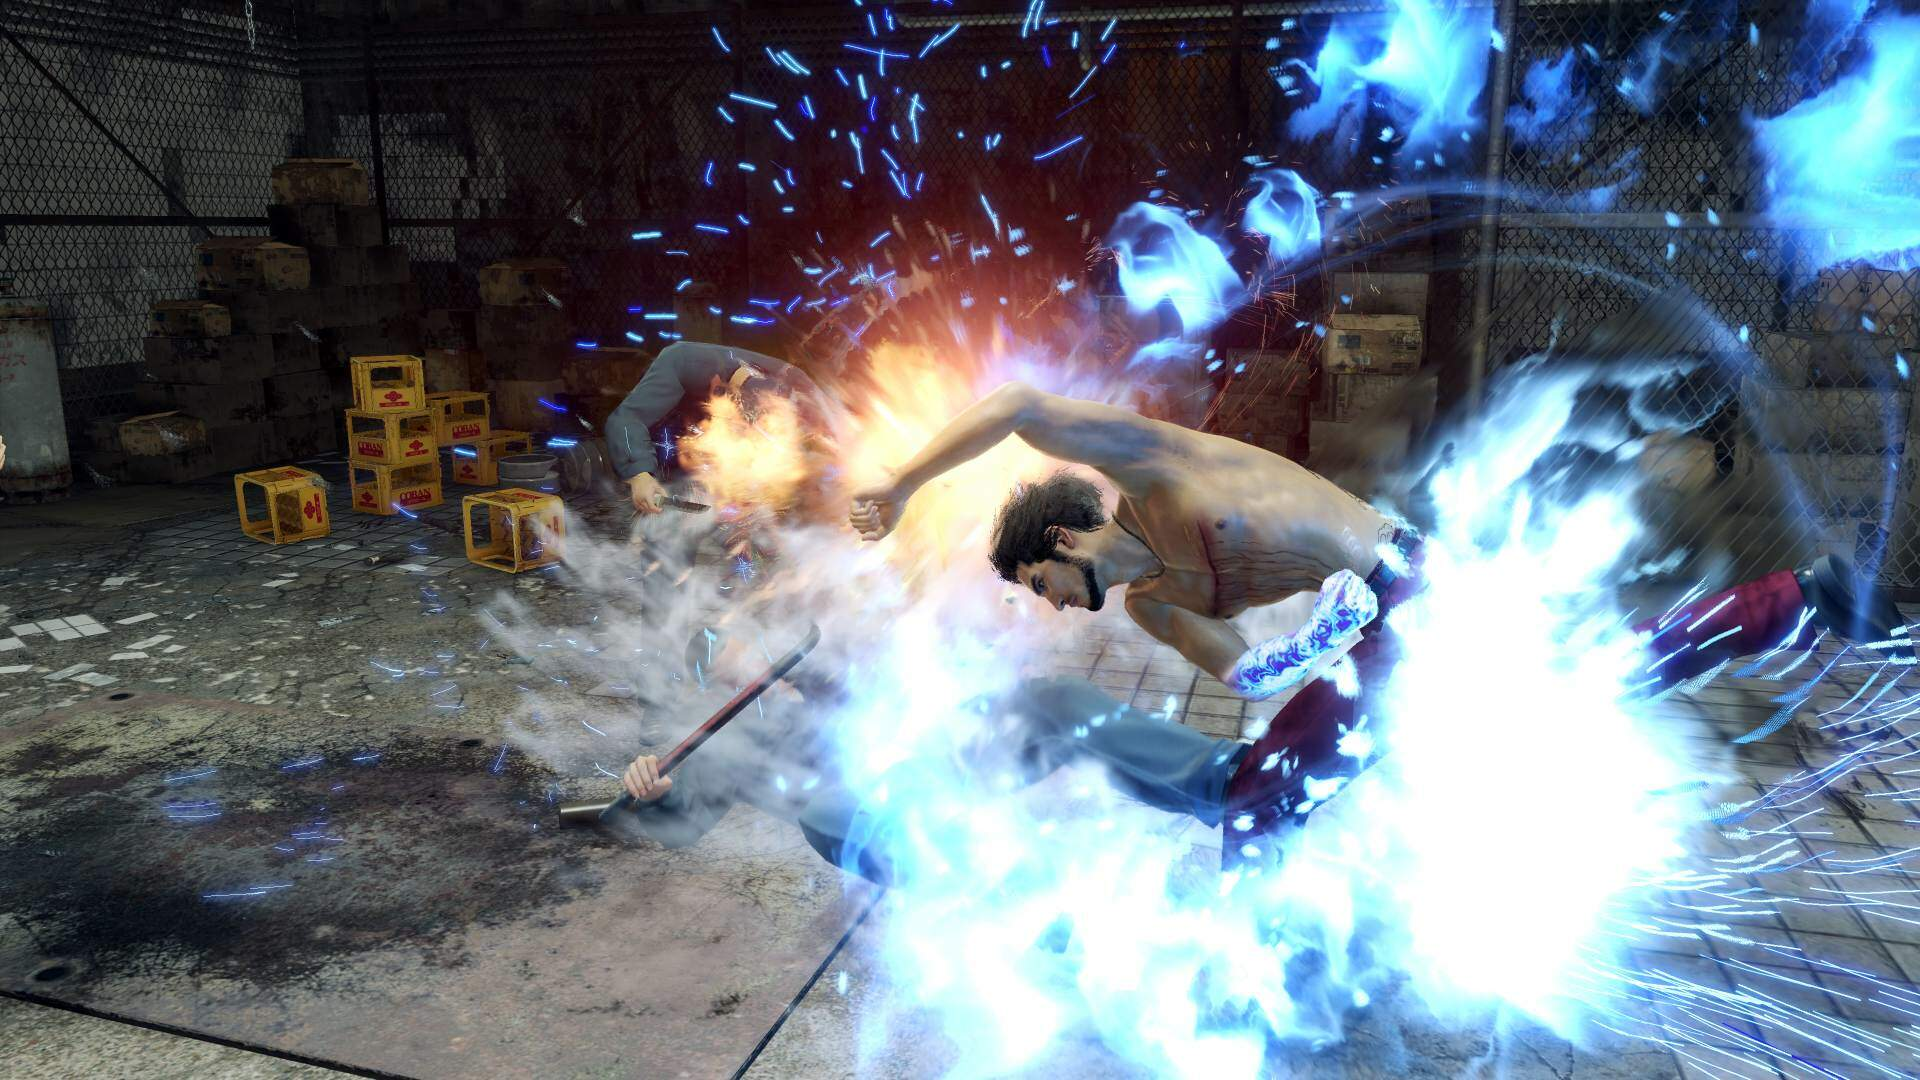 Yakuza: Like a Dragon Launches This November in the West, Will Have a PS5 Upgrade